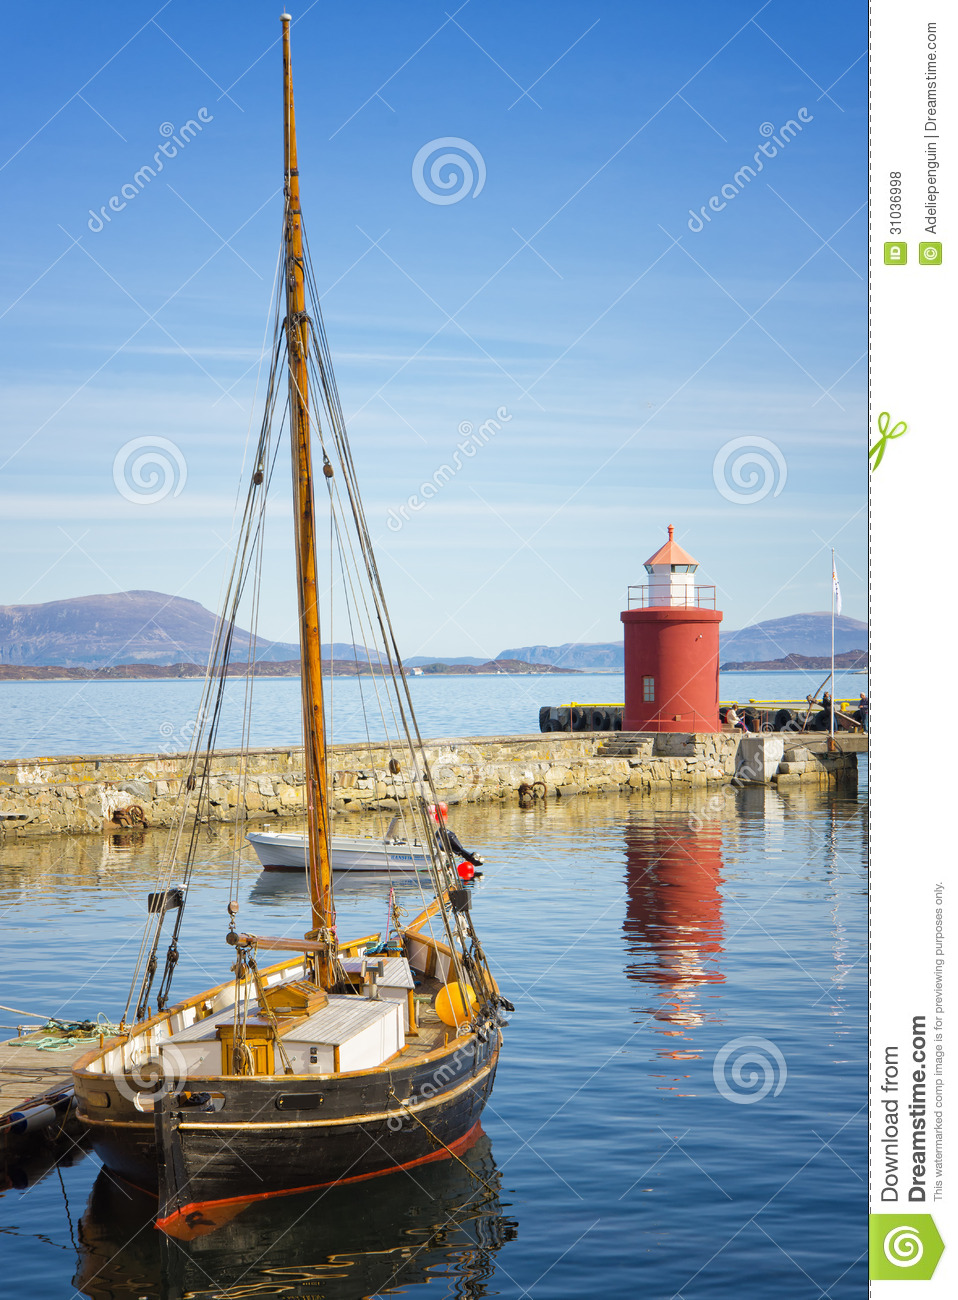 Sail Boat, Alesund, Norway Editorial Stock Photo - Image: 31036998